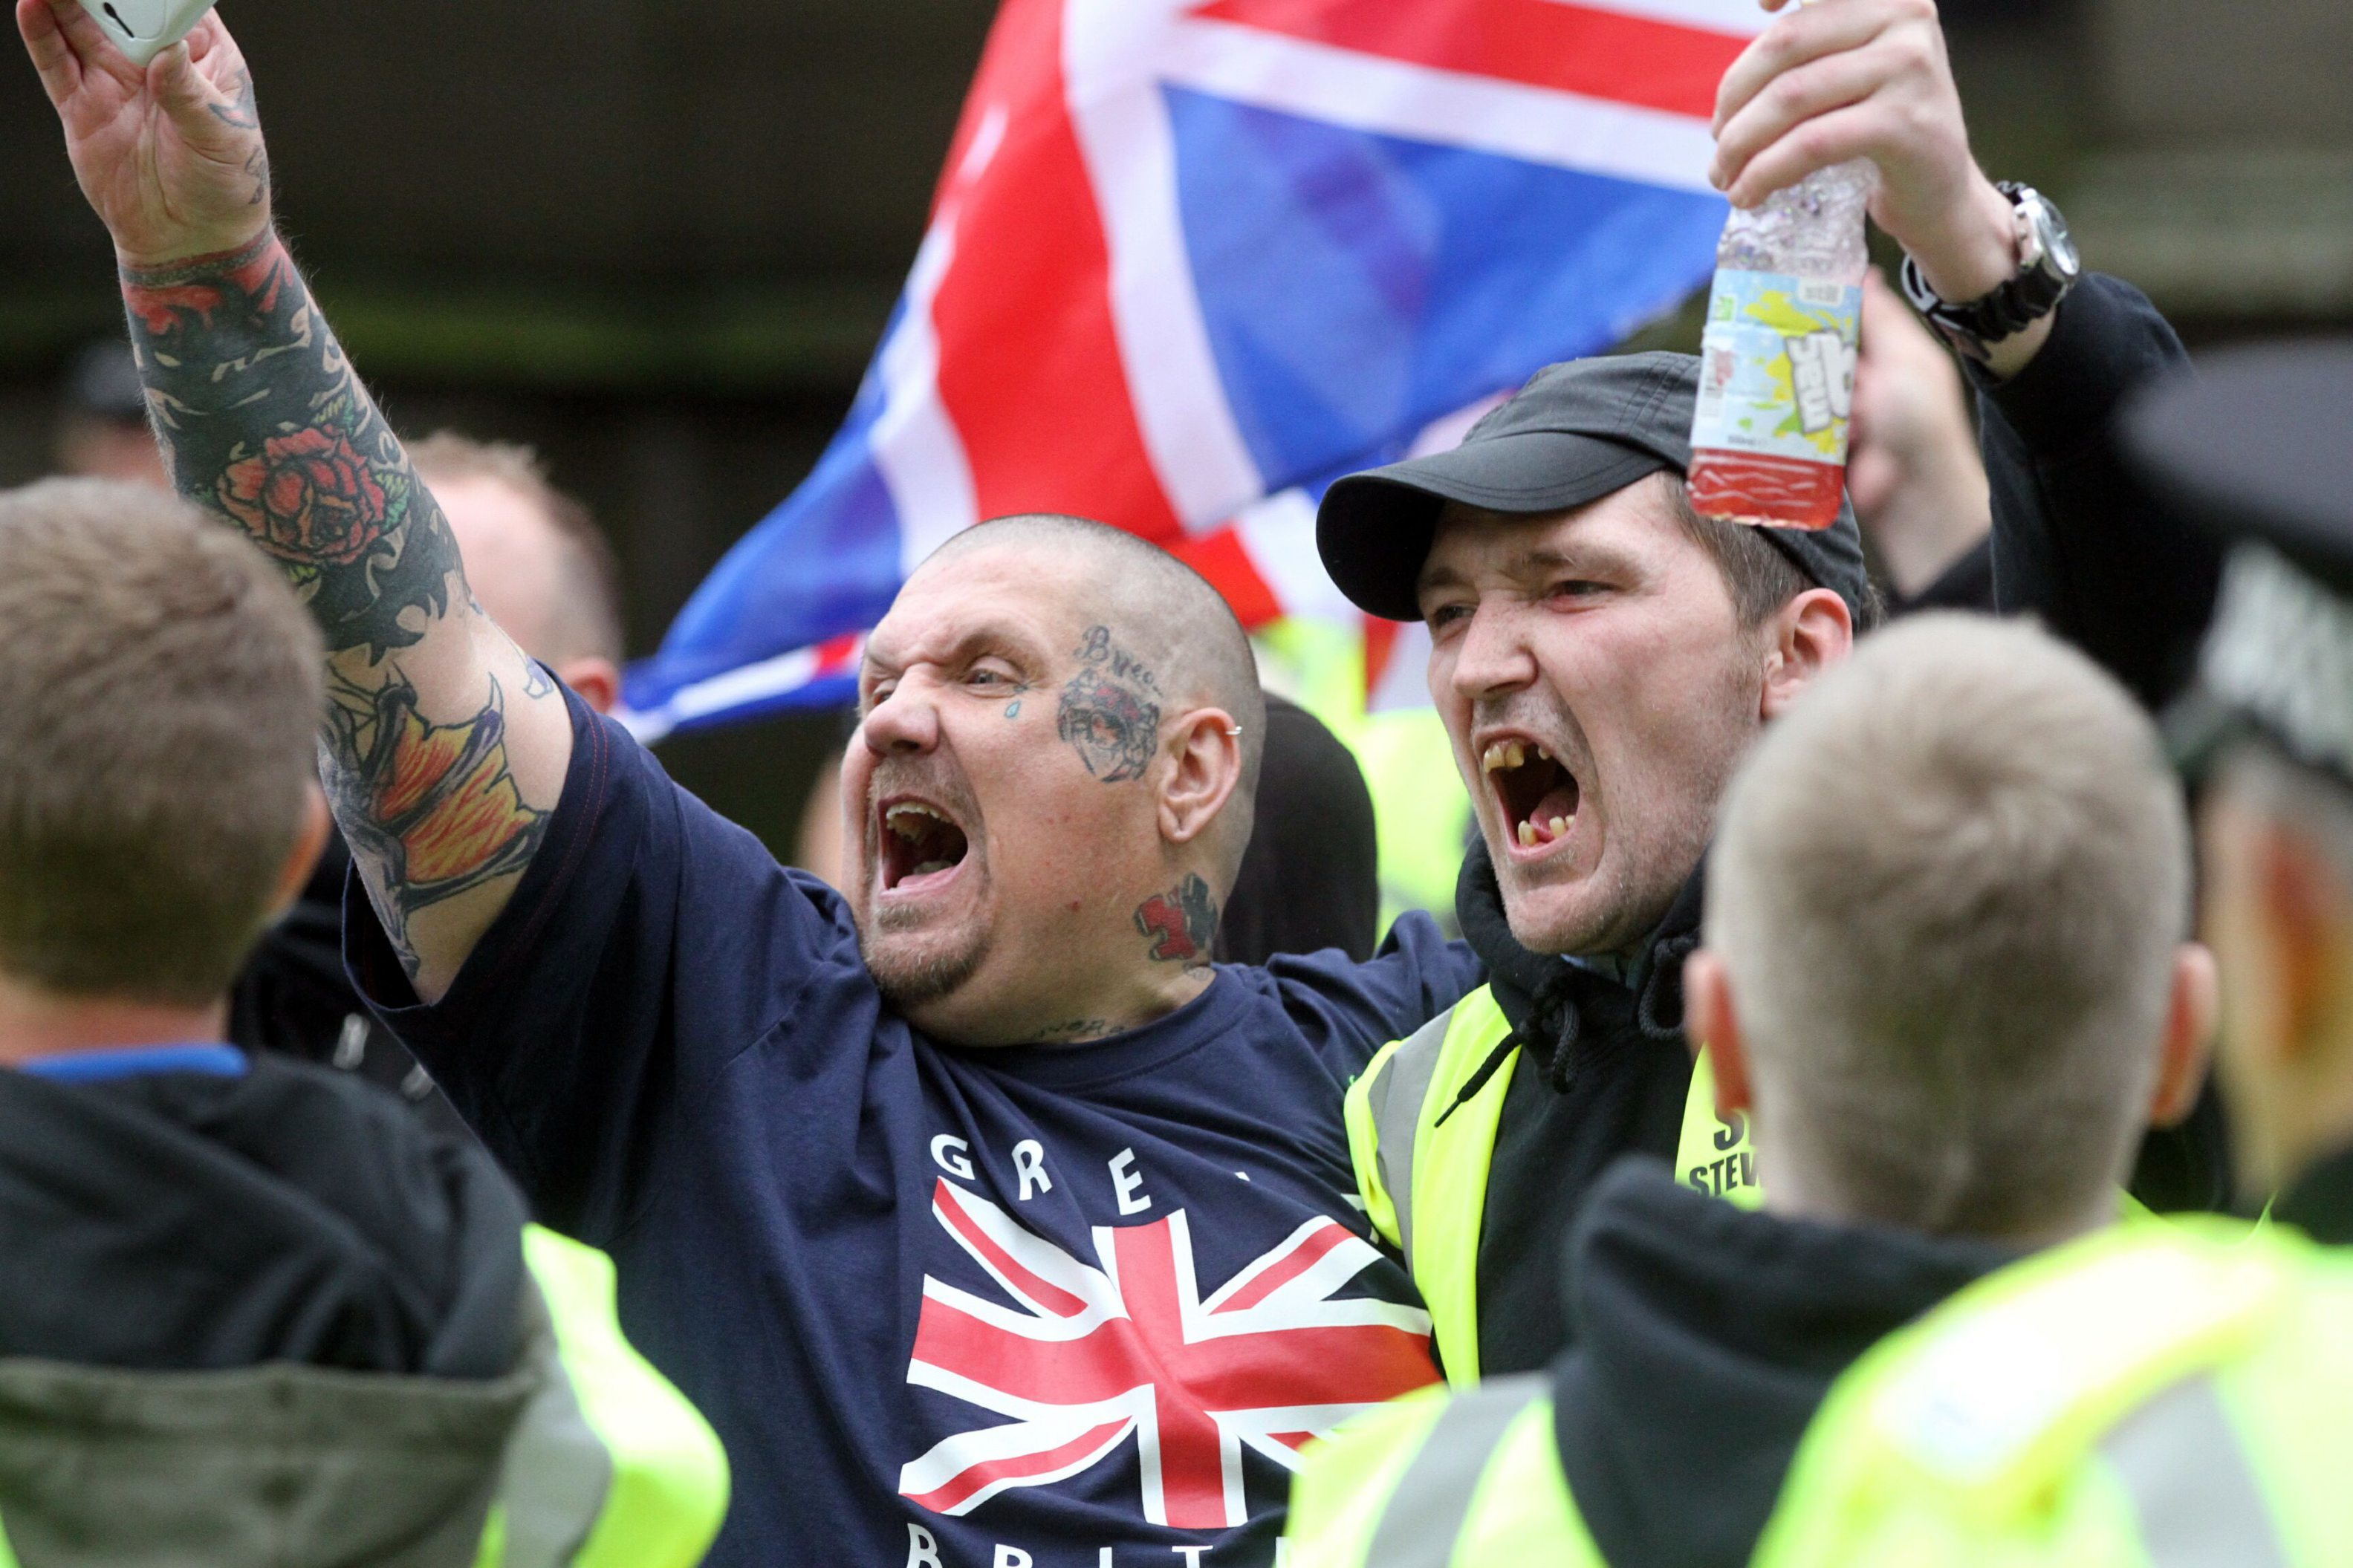 Members of the SDL taunt members of Dundee Together during counter demonstrations in the city centre in 2013.